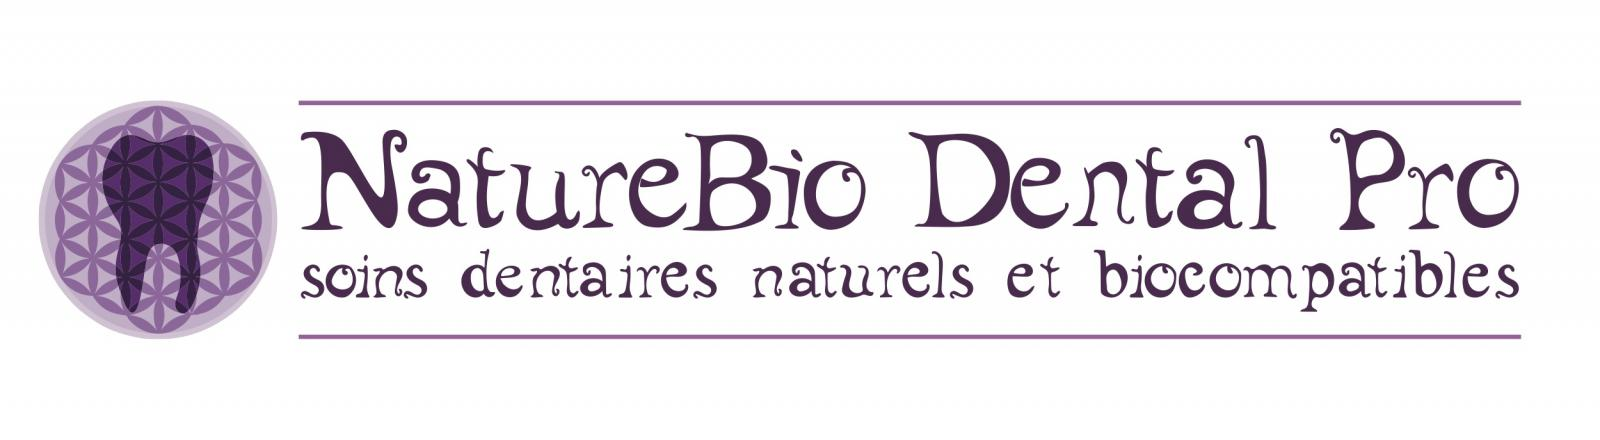 NatureBio Dental Pro